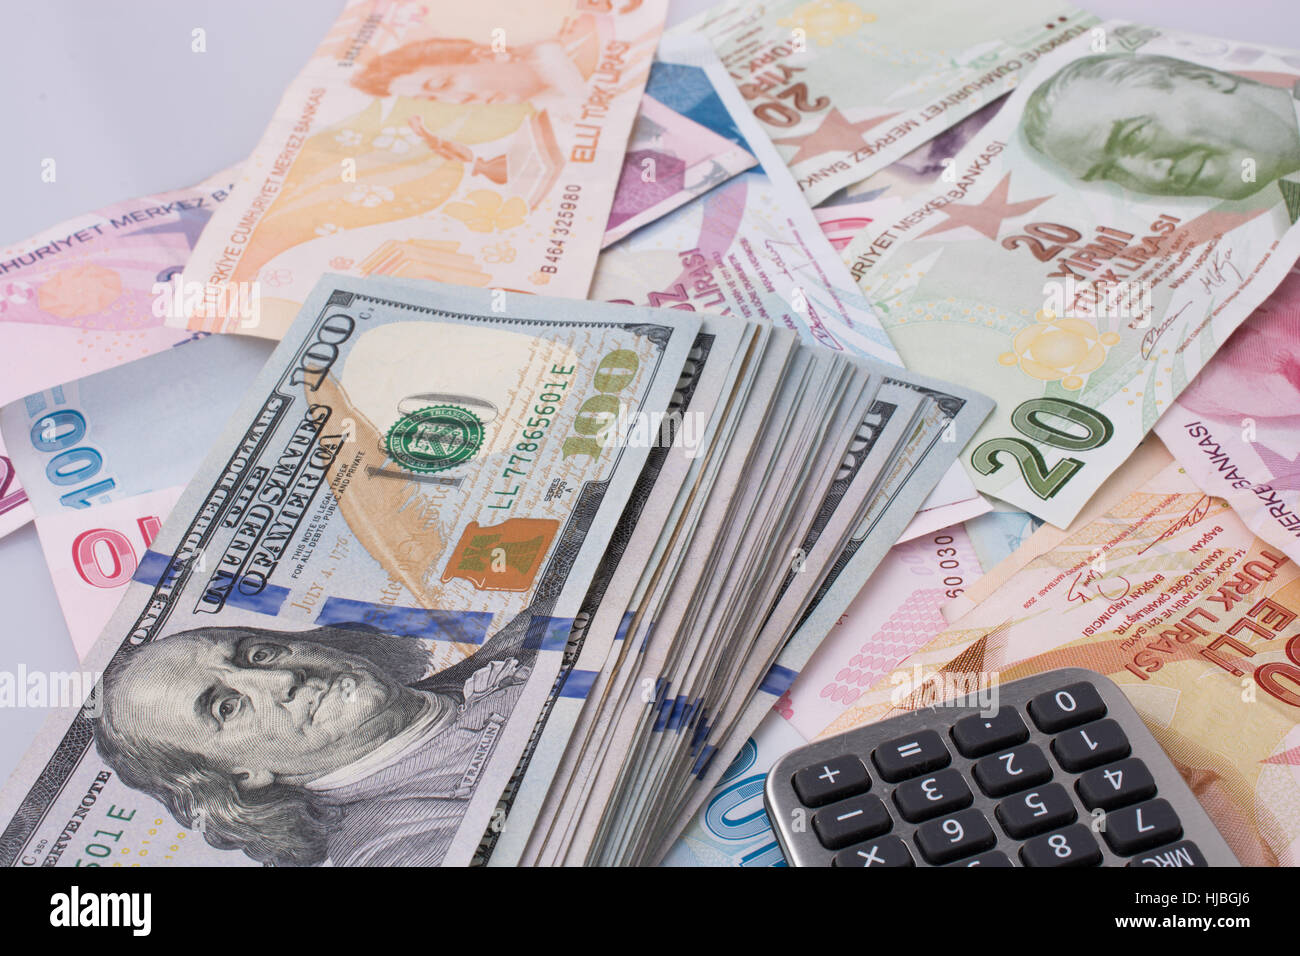 Calculator, American dollar banknotes and Turksh Lira banknotes side by side on white background Stock Photo